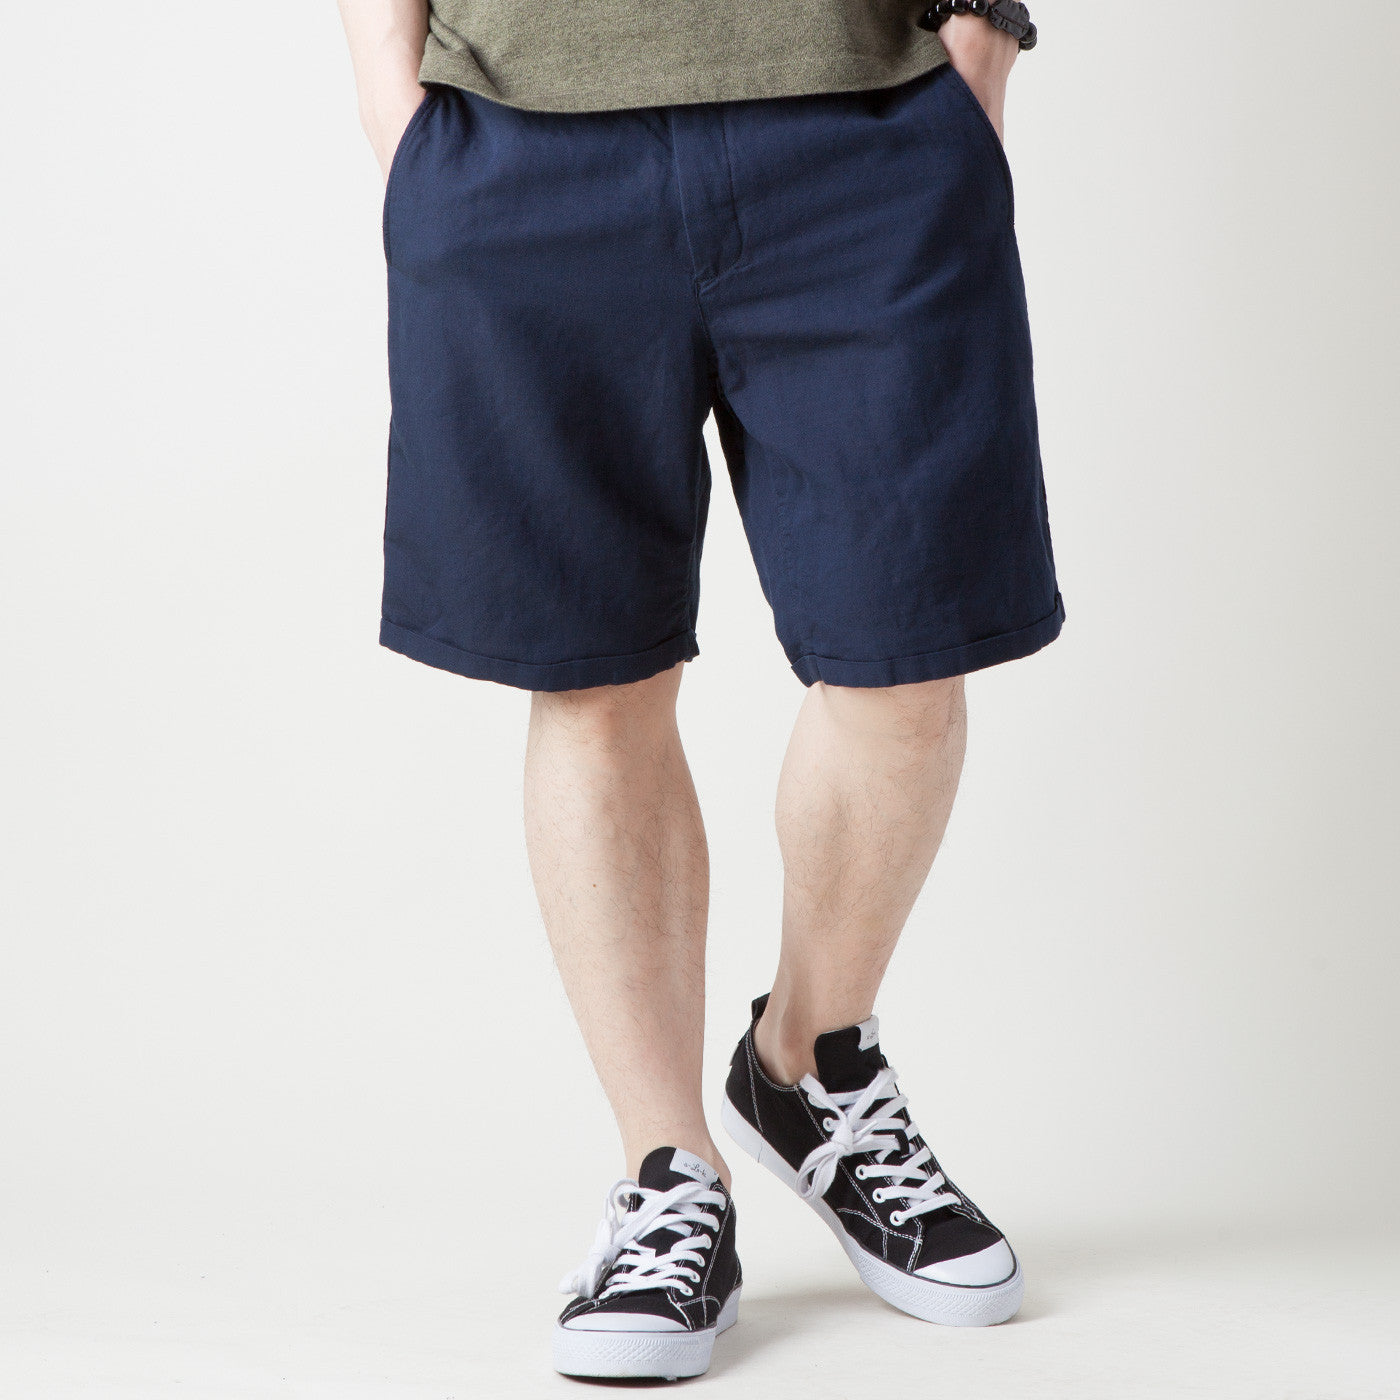 FENRIS SHORT CANVAS PANTS (NAVY)